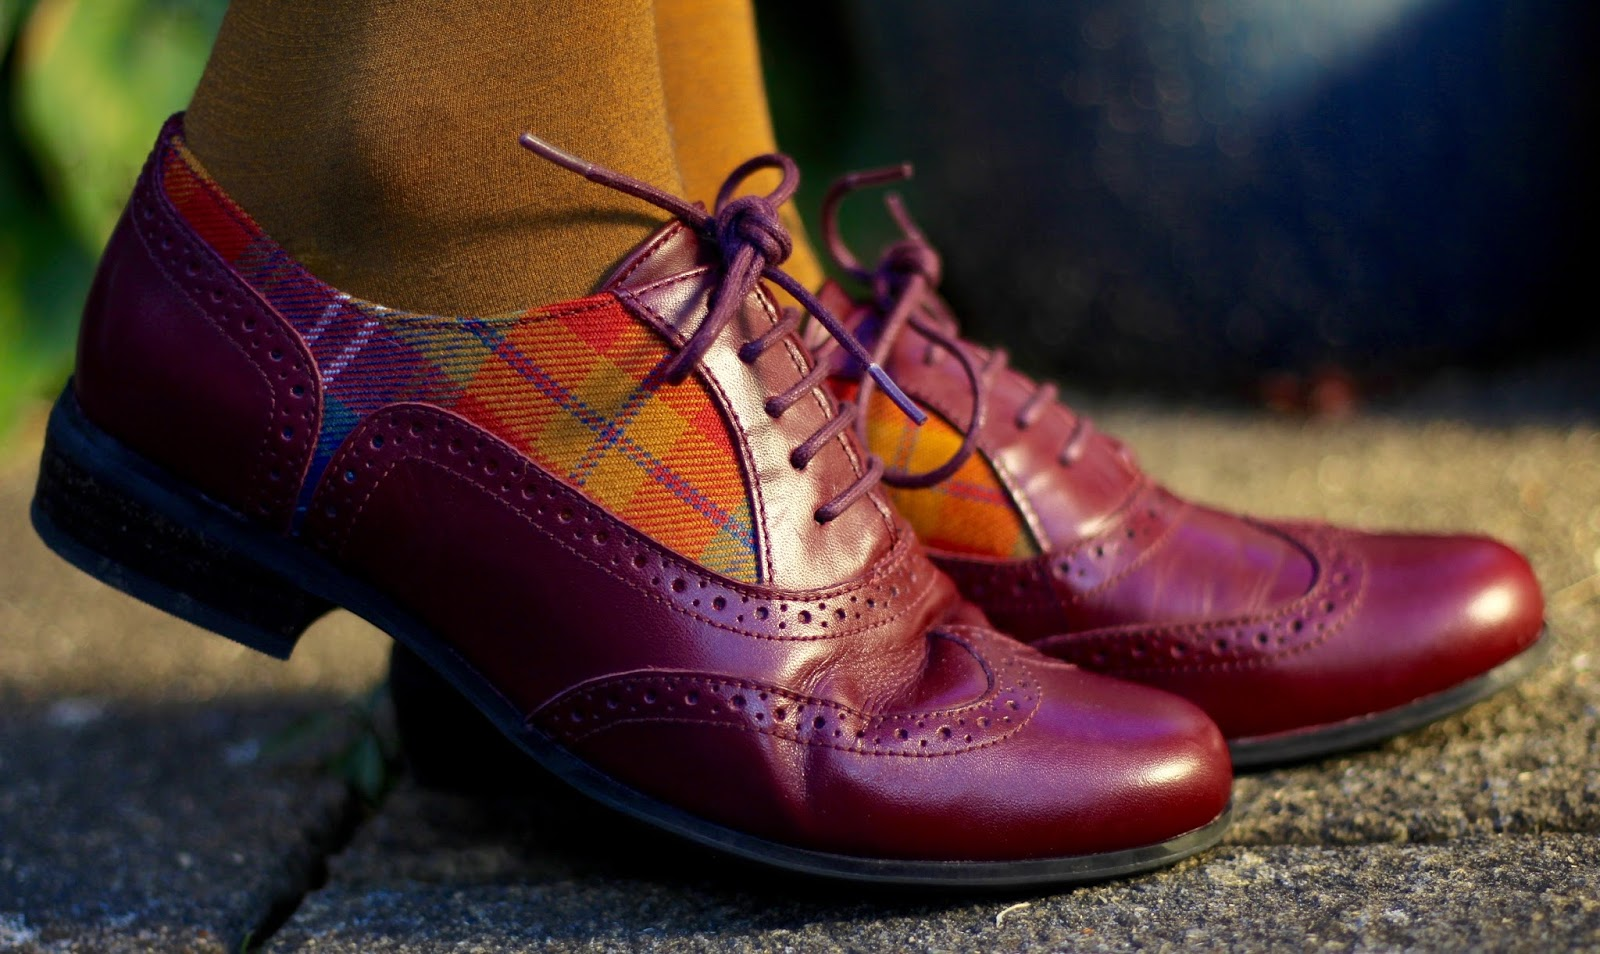 Clarks Oxblood Brogues with Tartan | Fake Fabulous